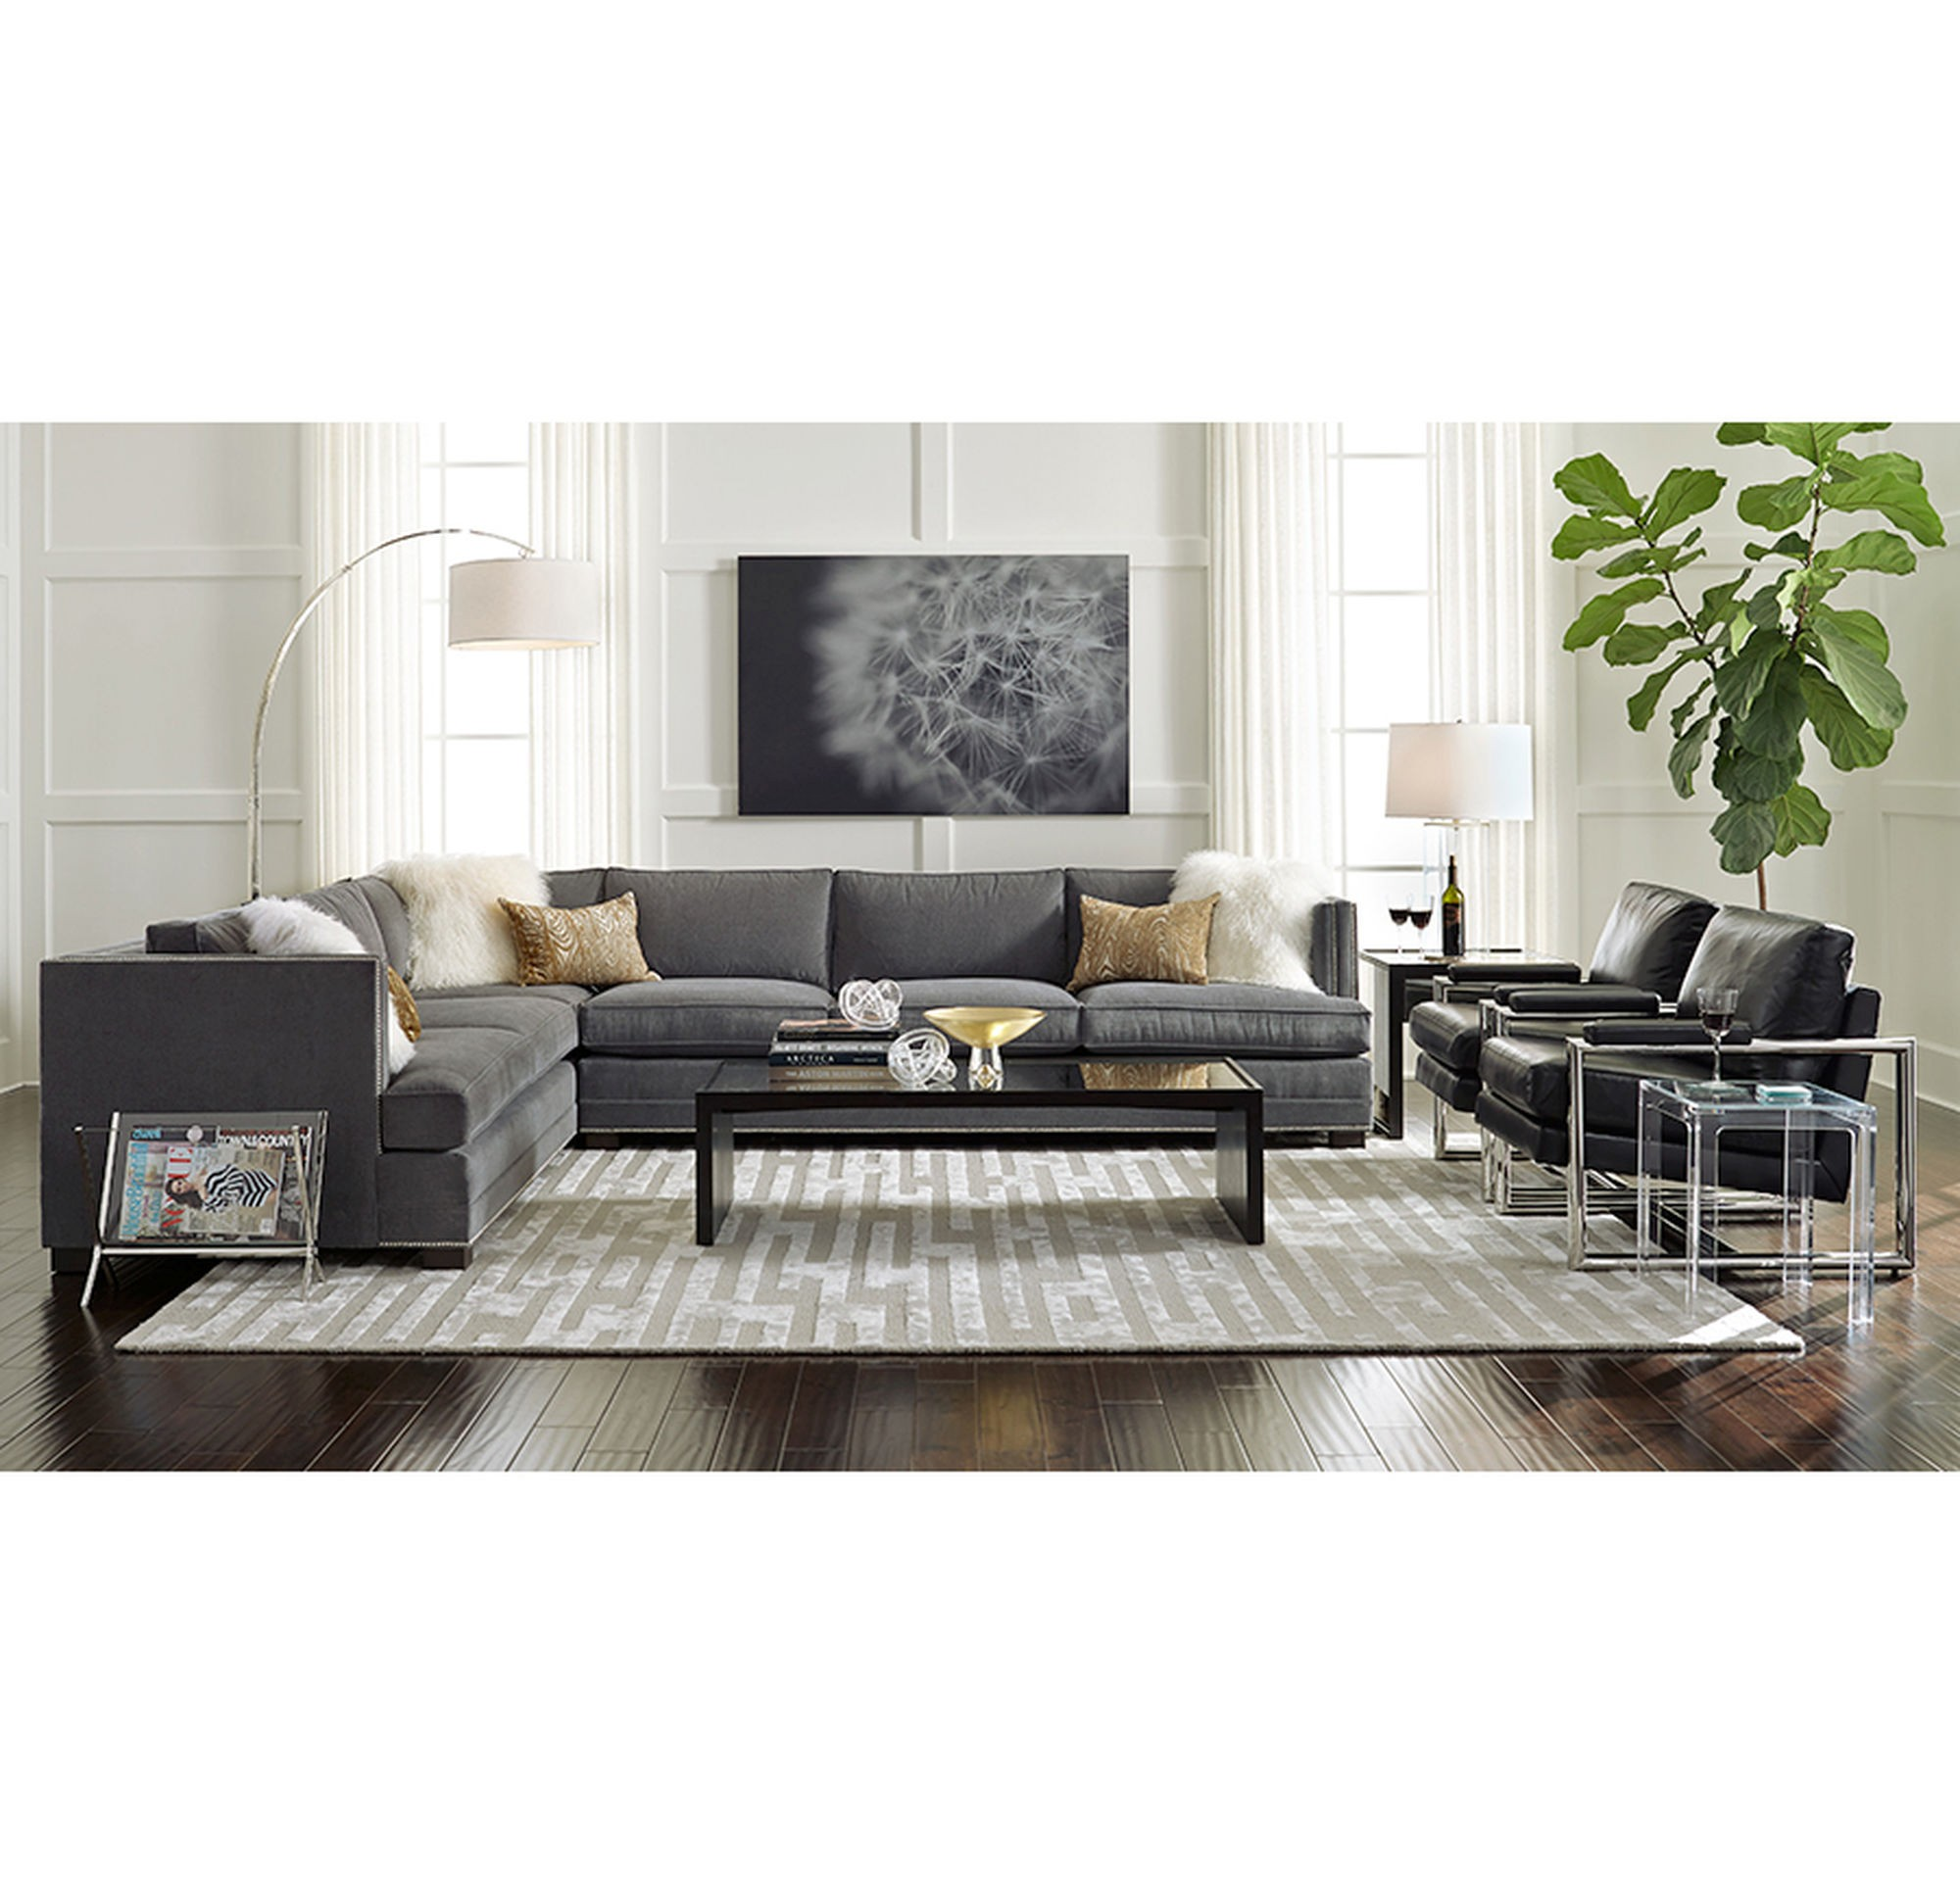 Mitchell Gold sofa Reviews Superb sofas Amazing Mitchell Gold and Bob Williams sofa Bobs Furniture Concept